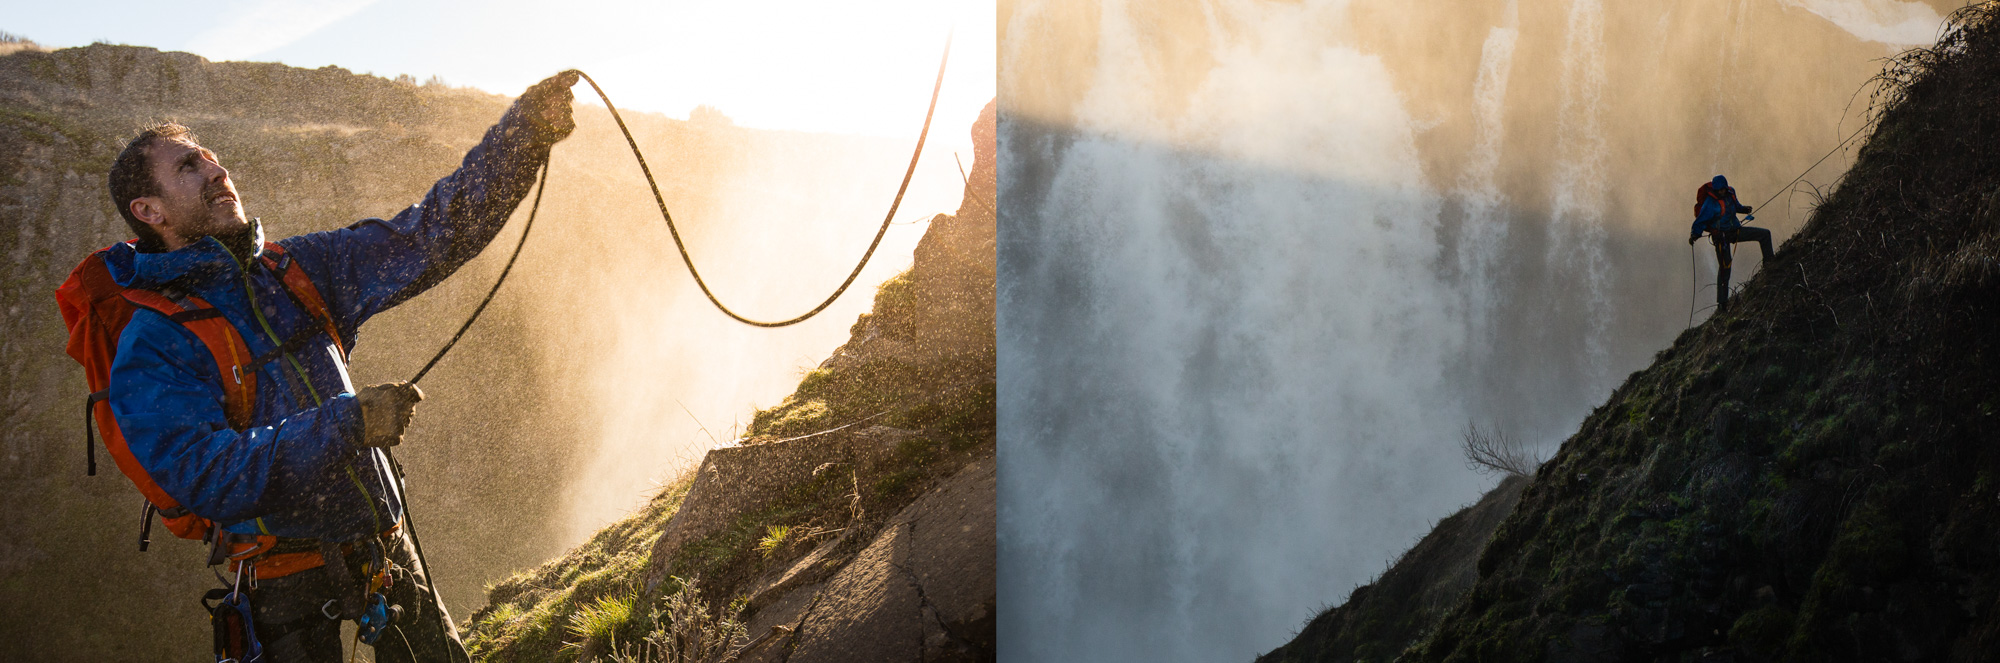 Rappel Waterfall | Outside Travel Photographer